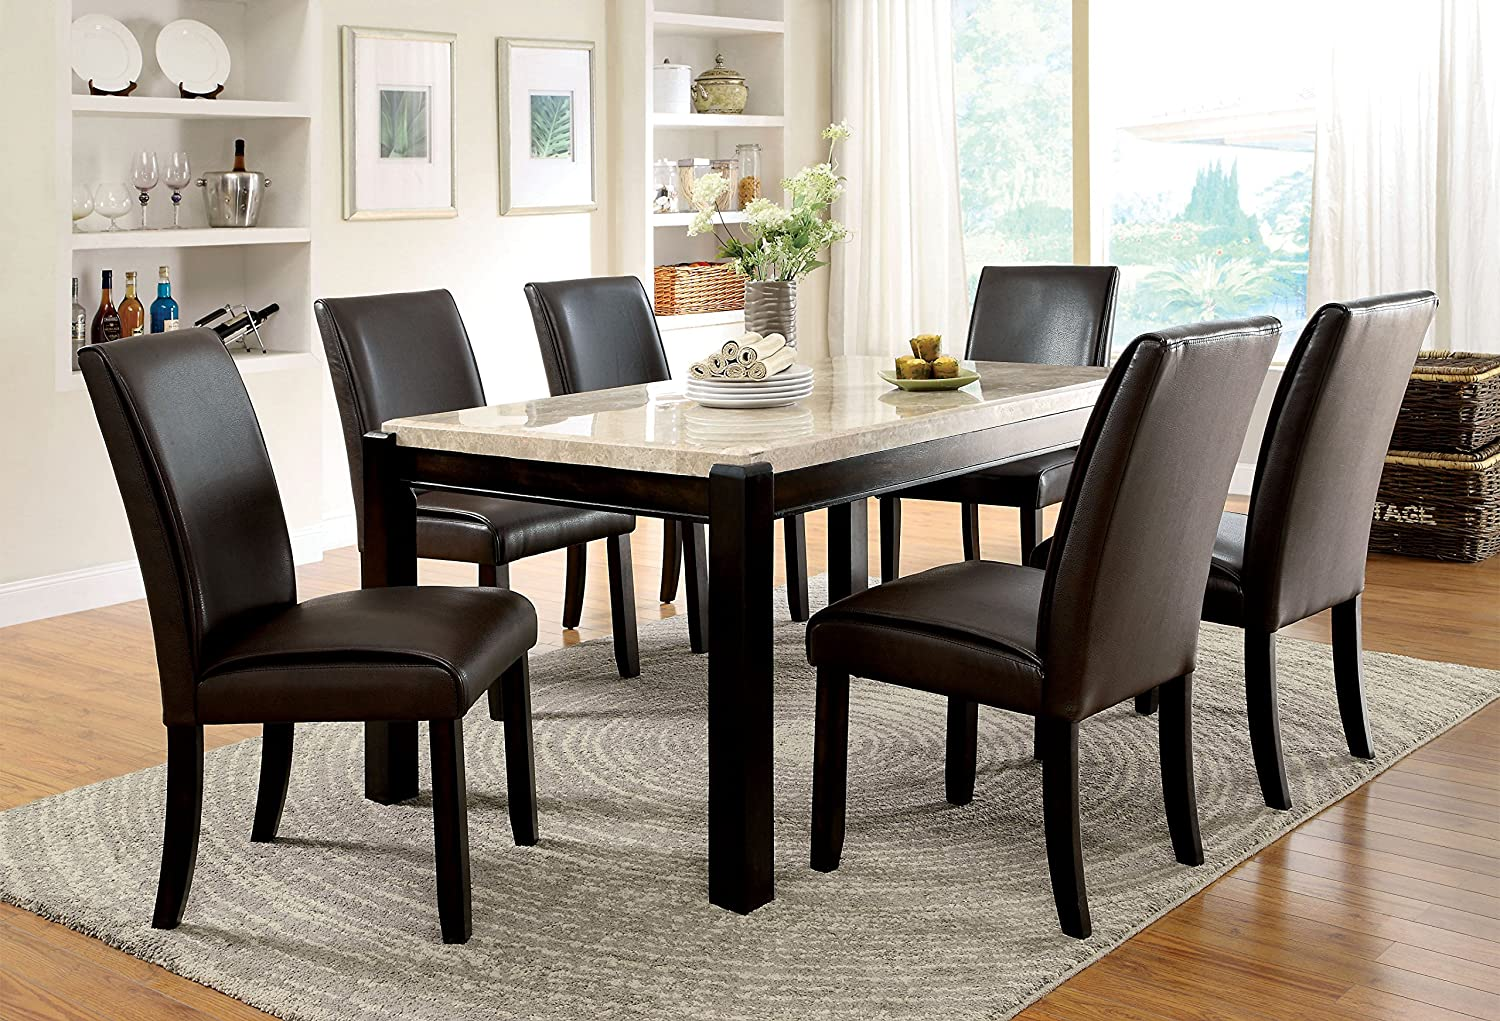 Boost your Dining Space with Marvel Dining Table